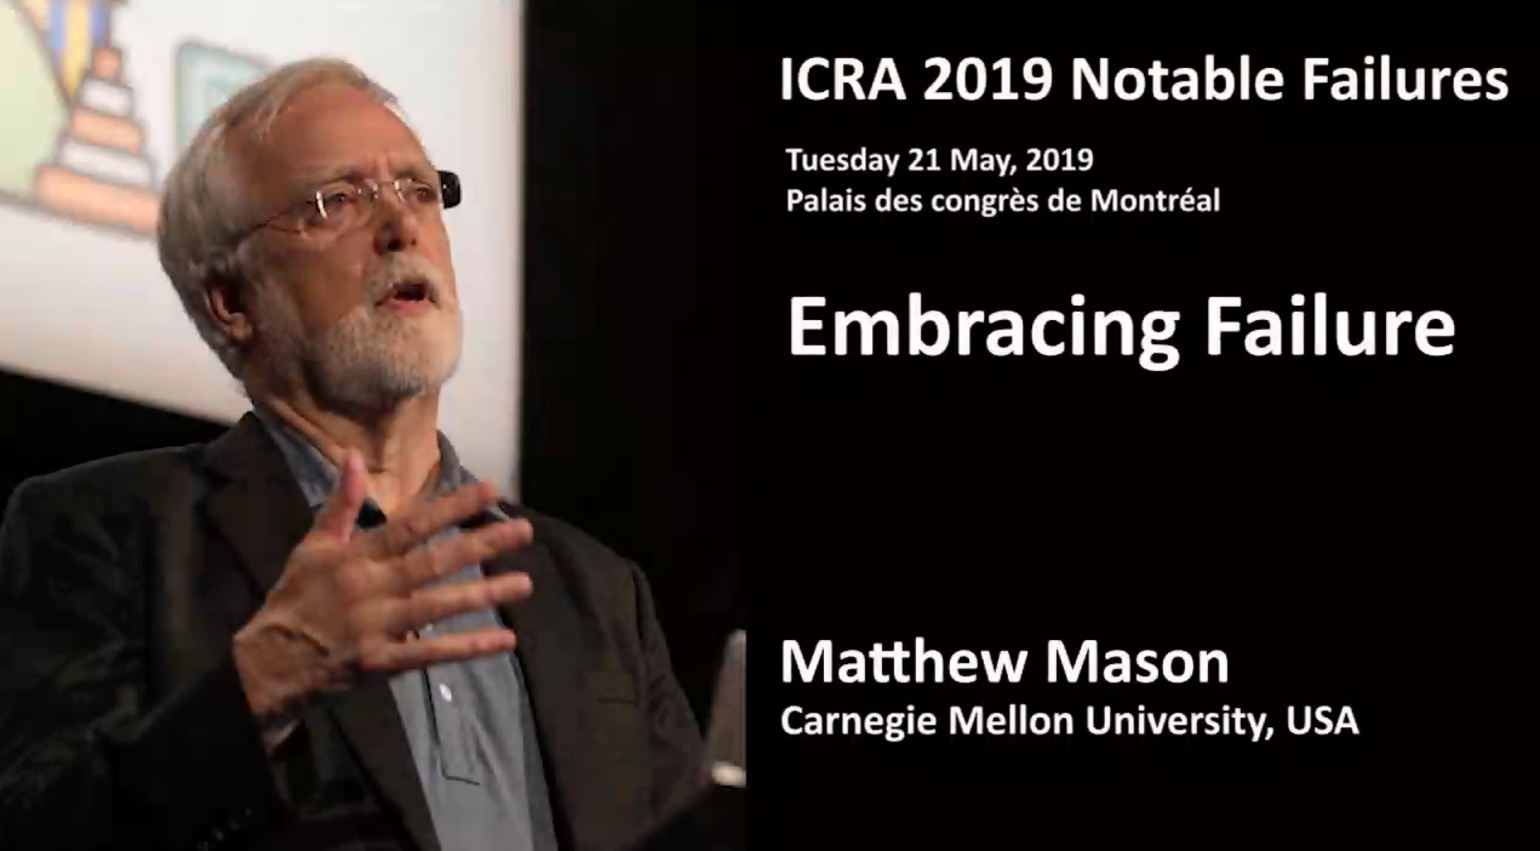 2019 ICRA Notable Failures with Matthew Mason